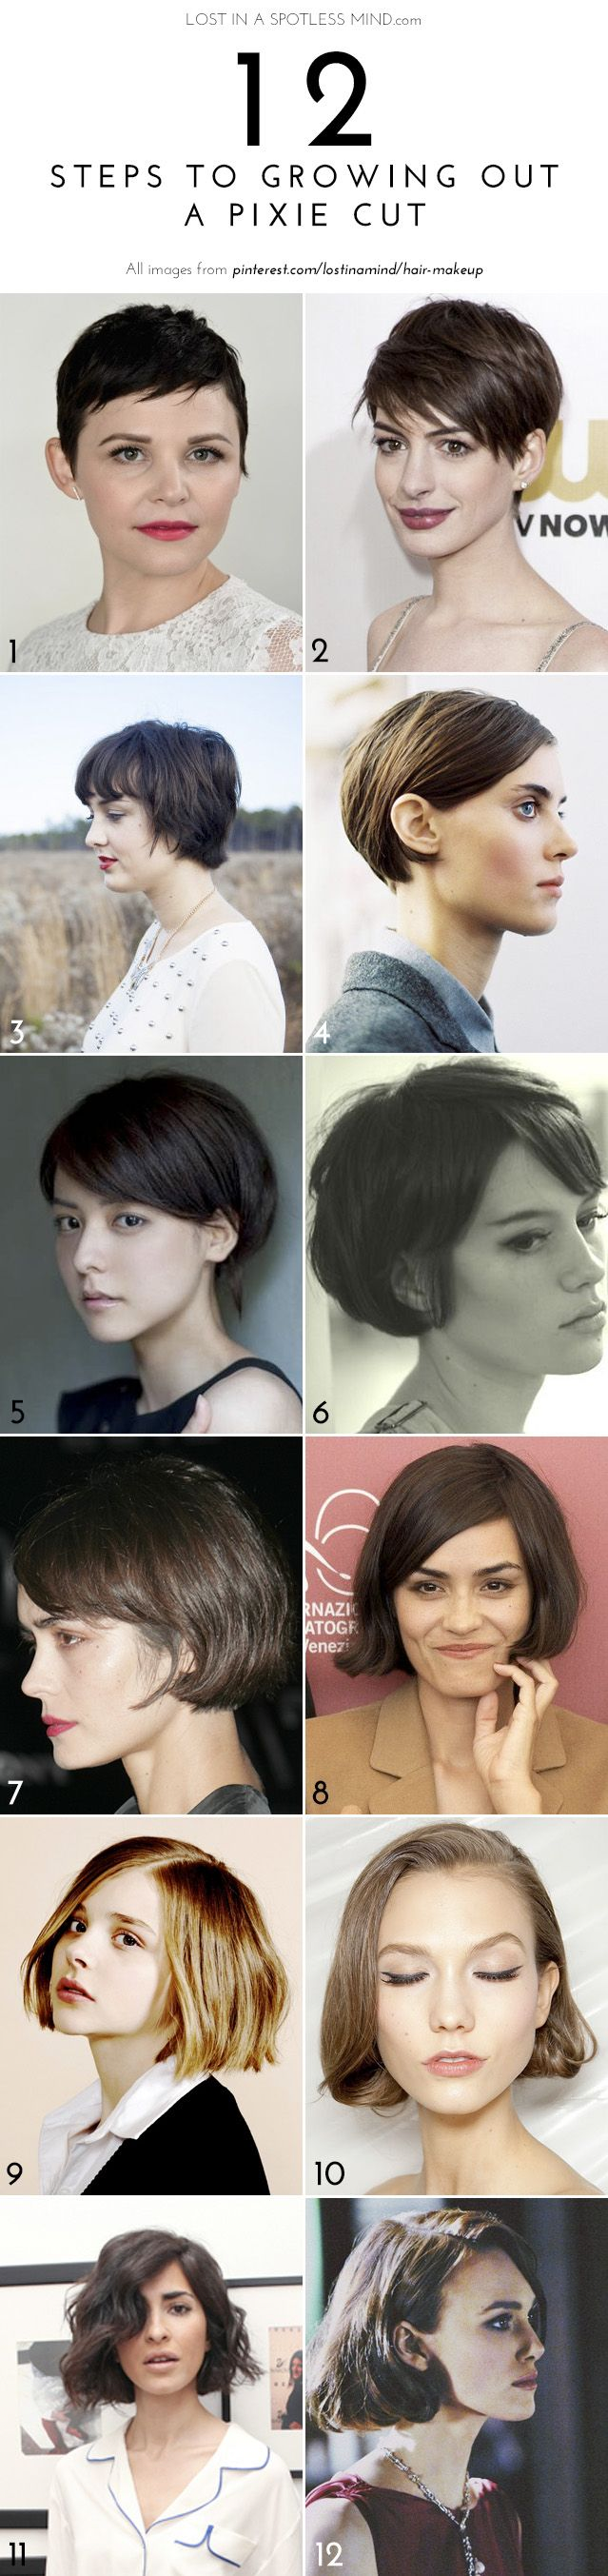 Grow out a pixie